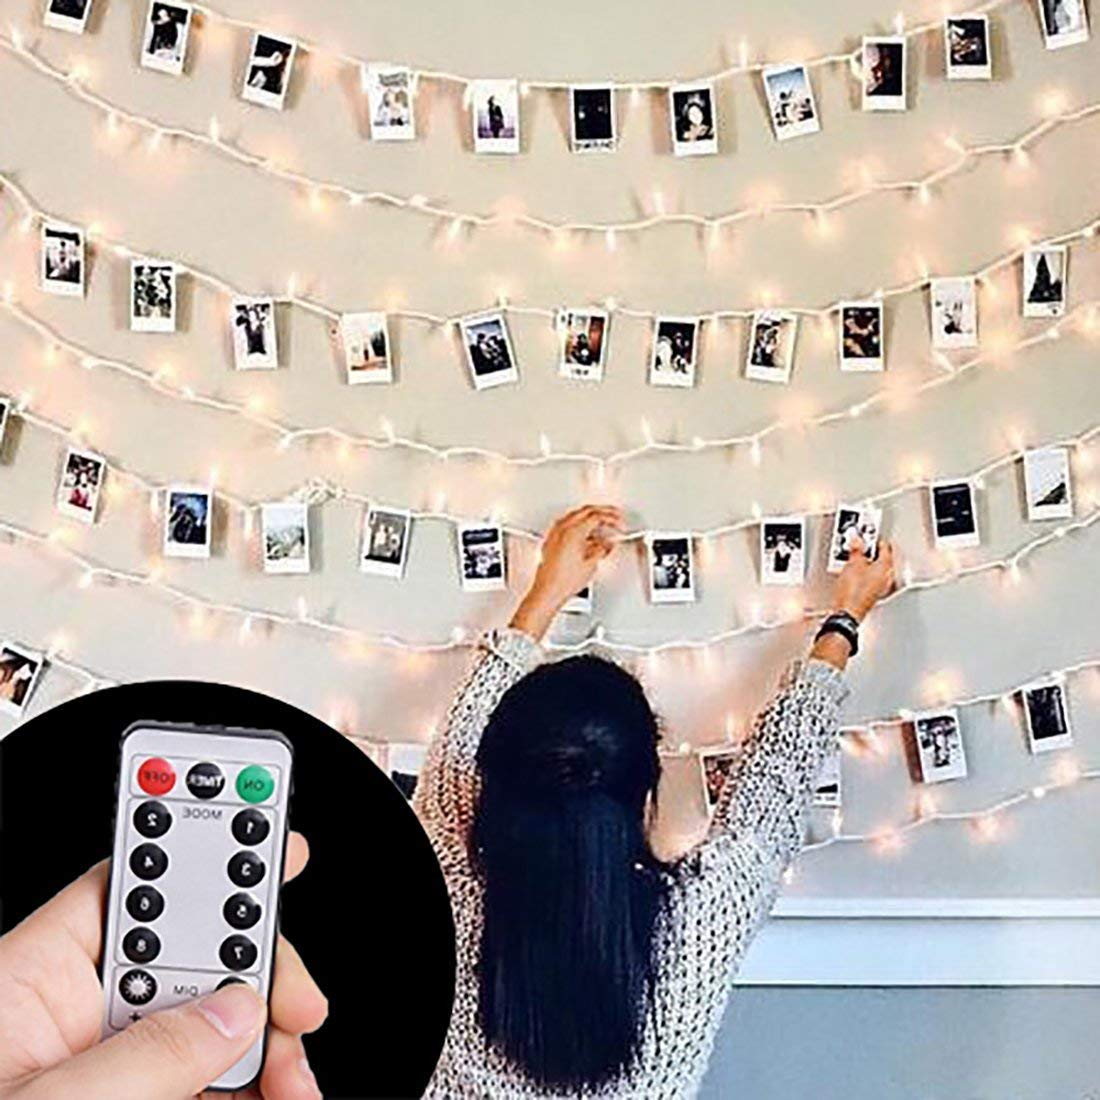 HAYATA ⭐️[Remote & Timer] 40 LED Wooden Photo Clips String Light Picture Display - 20ft Fairy Battery Operated Hanging Picture Frame for Party Wedding Dorm Bedroom Birthday Christmas Decorations by HAYATA